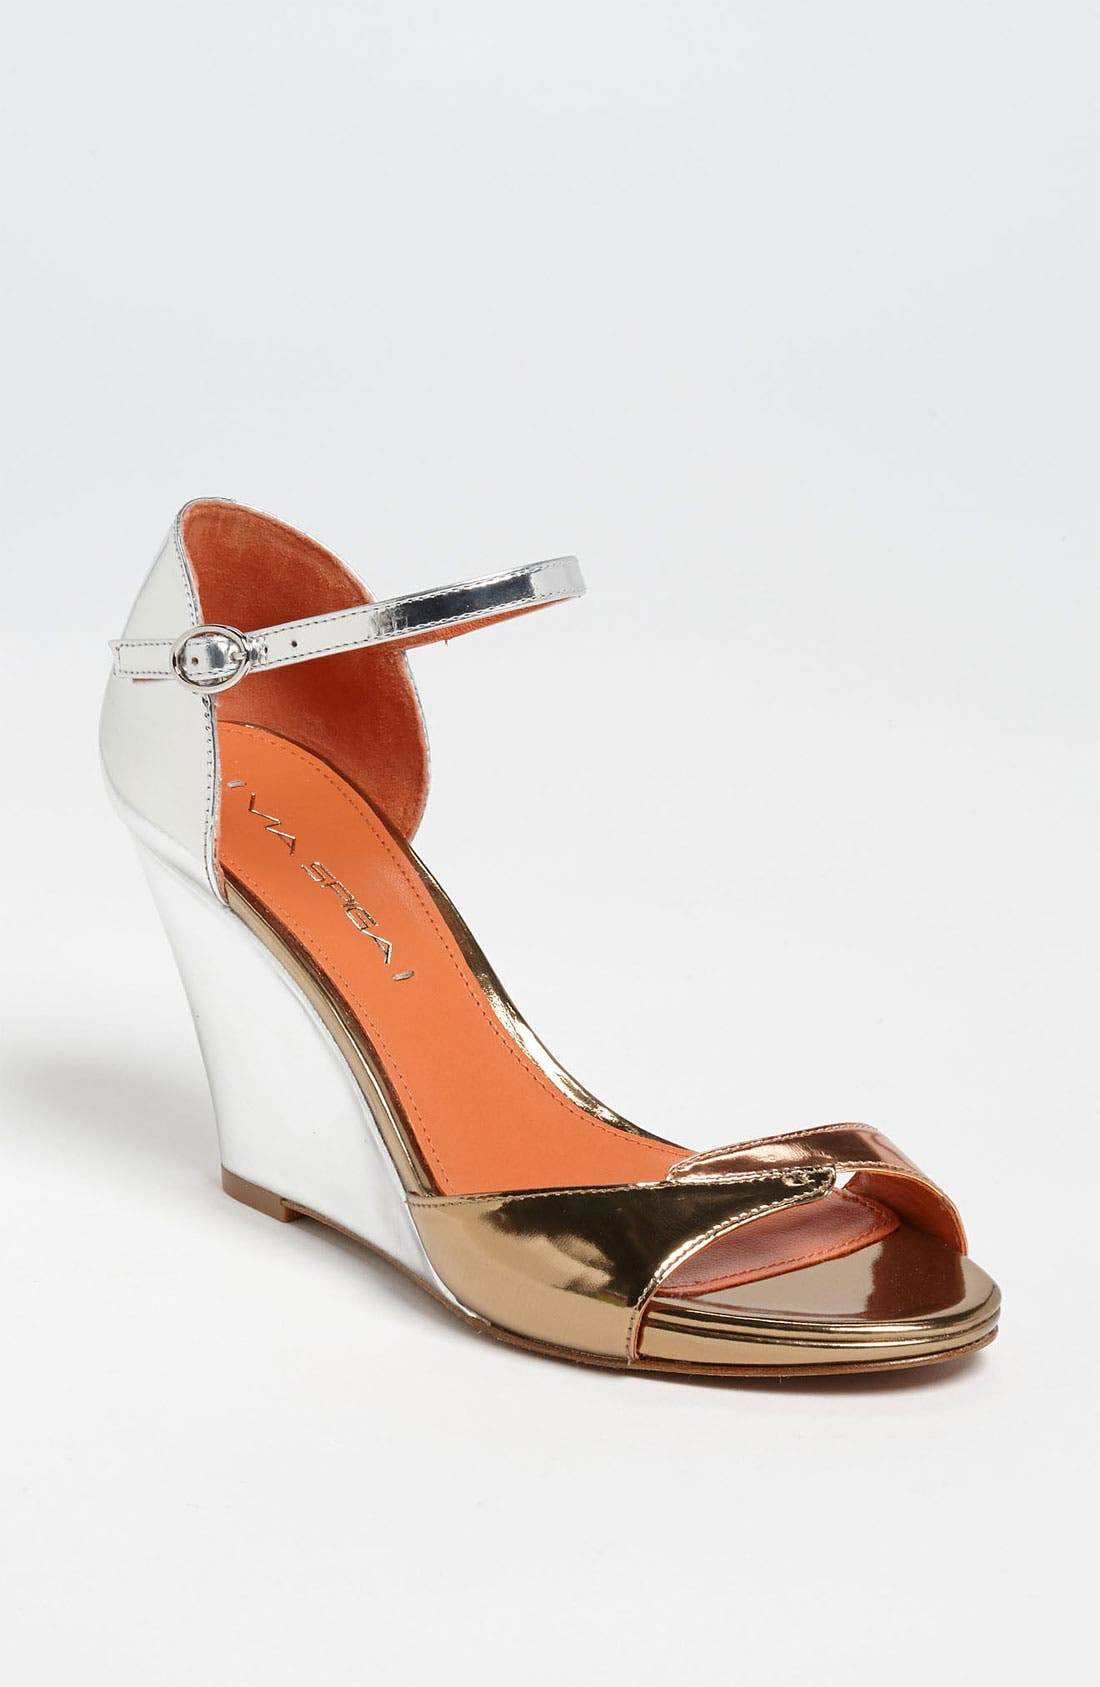 Main Image - Via Spiga 'Danice' Wedge Sandal